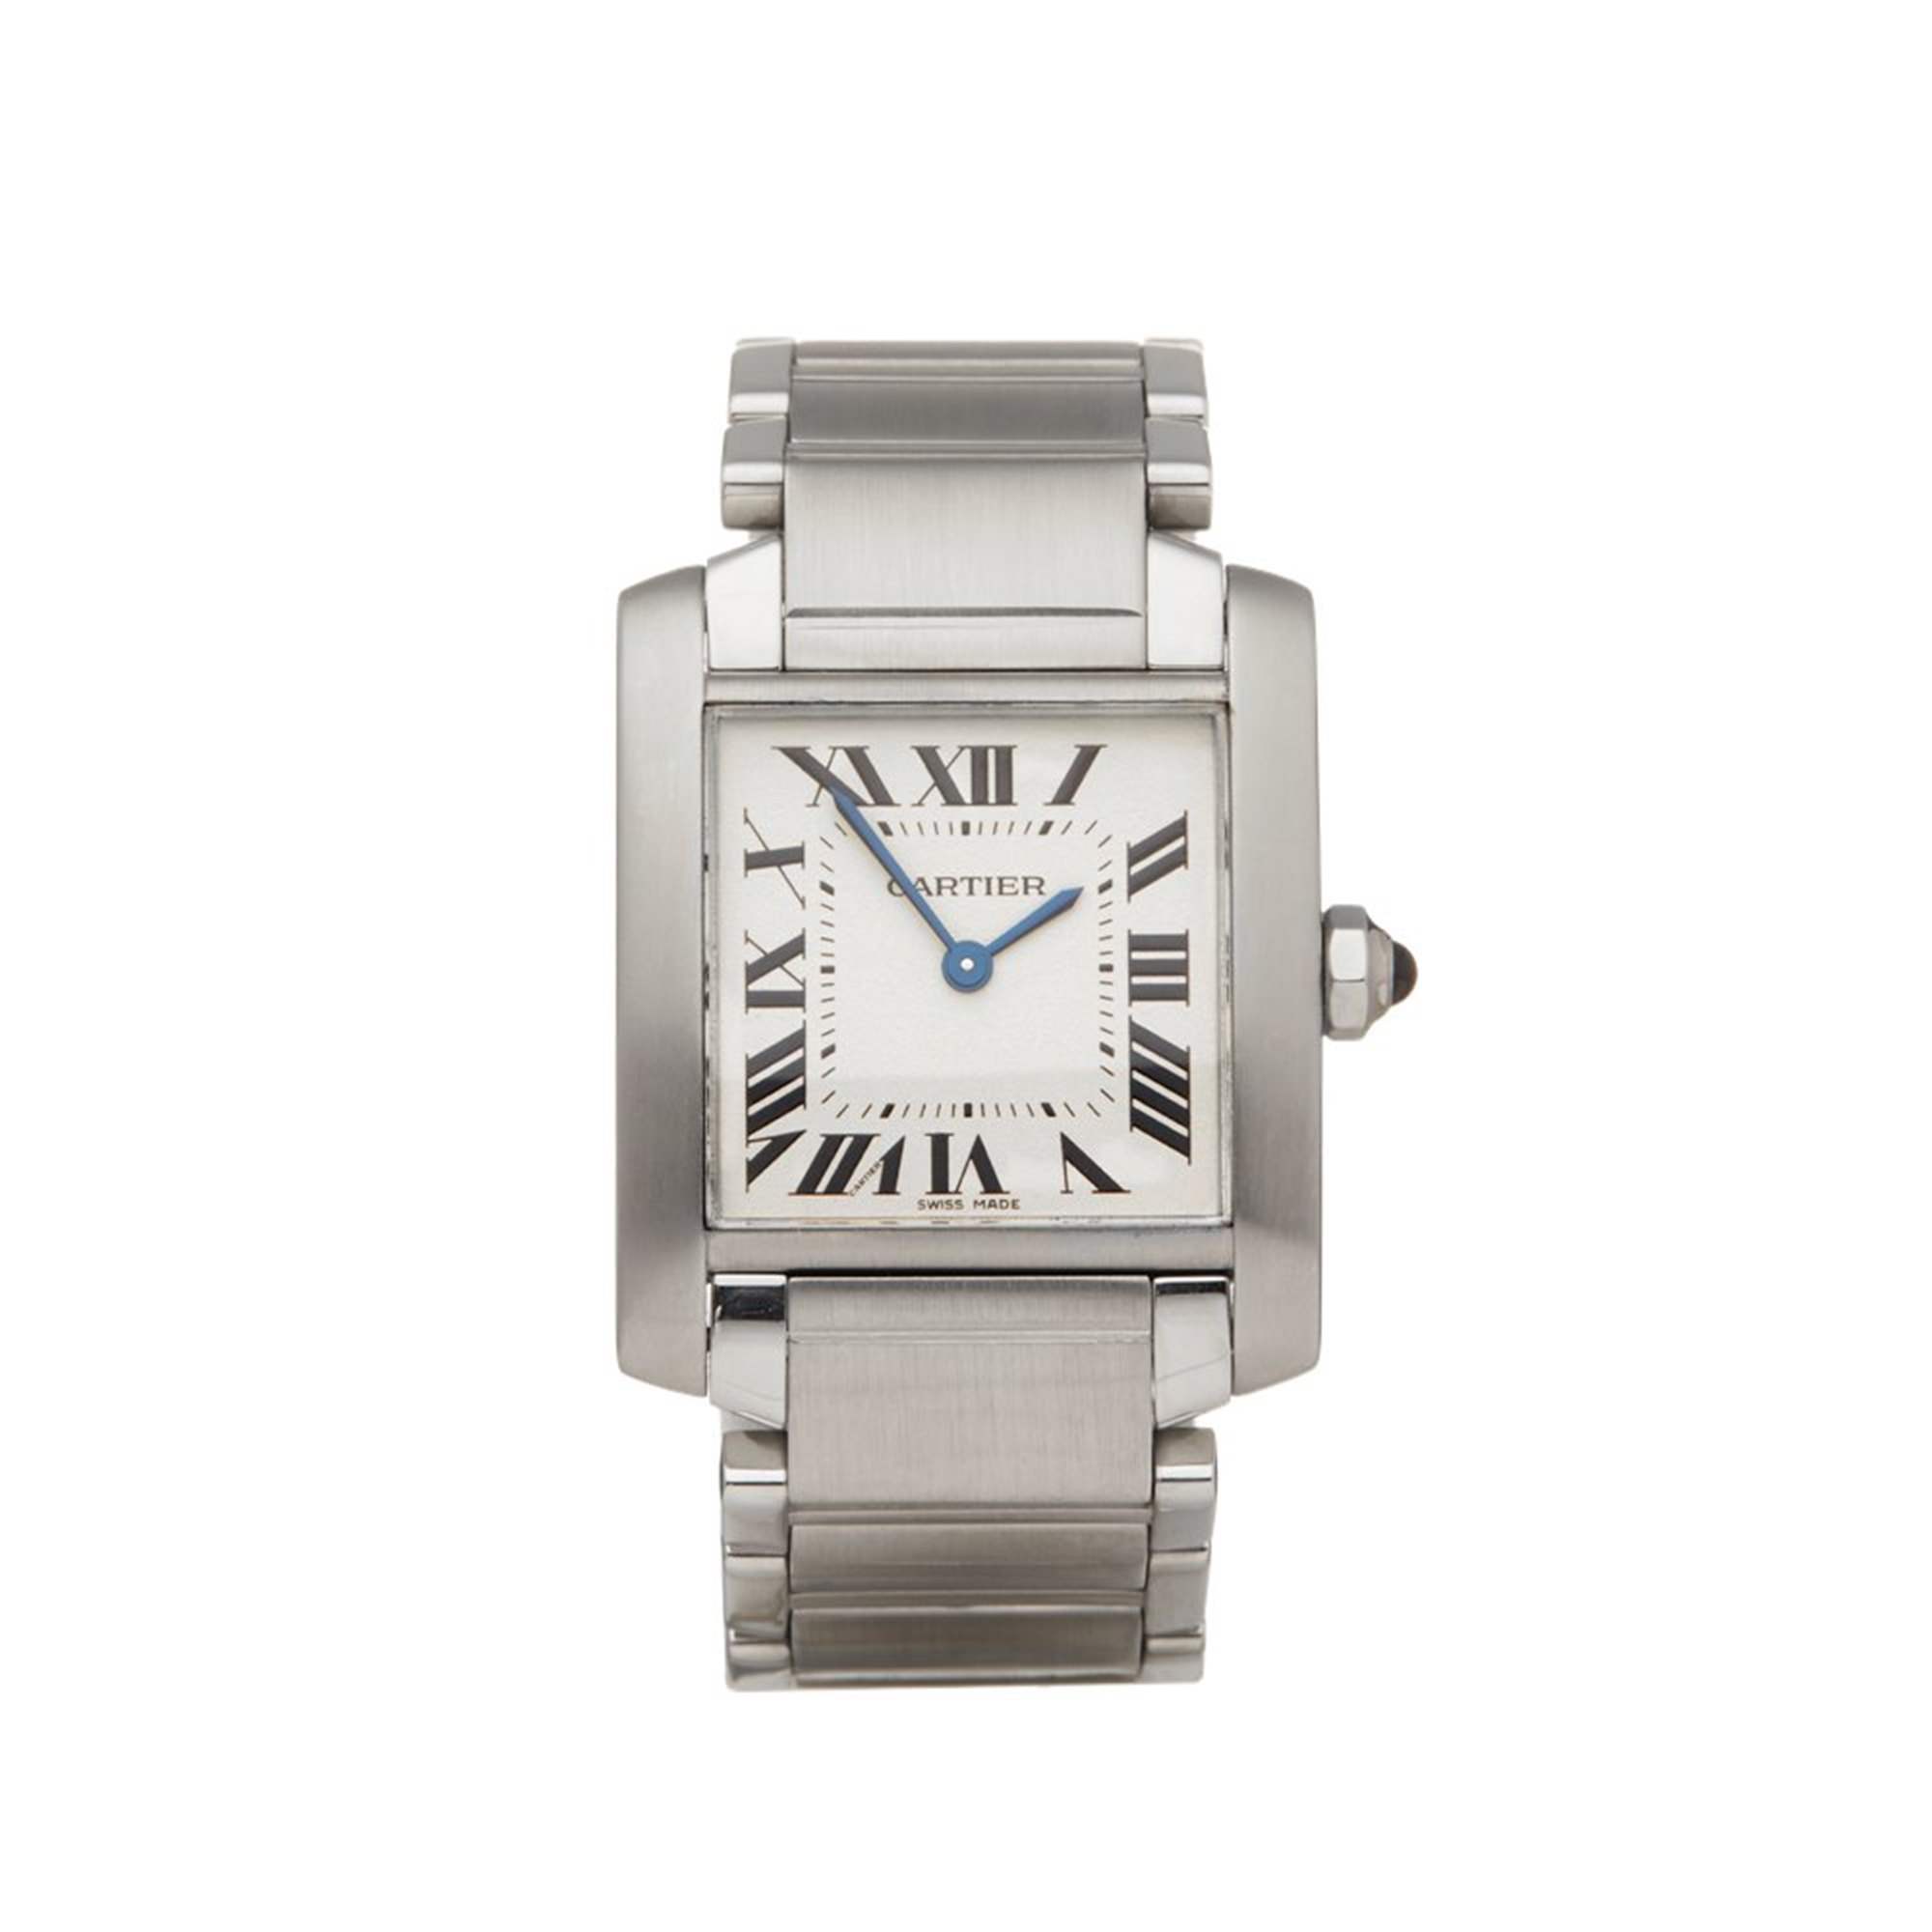 Cartier Tank Francaise Stainless Steel W51003Q3 OR 2301